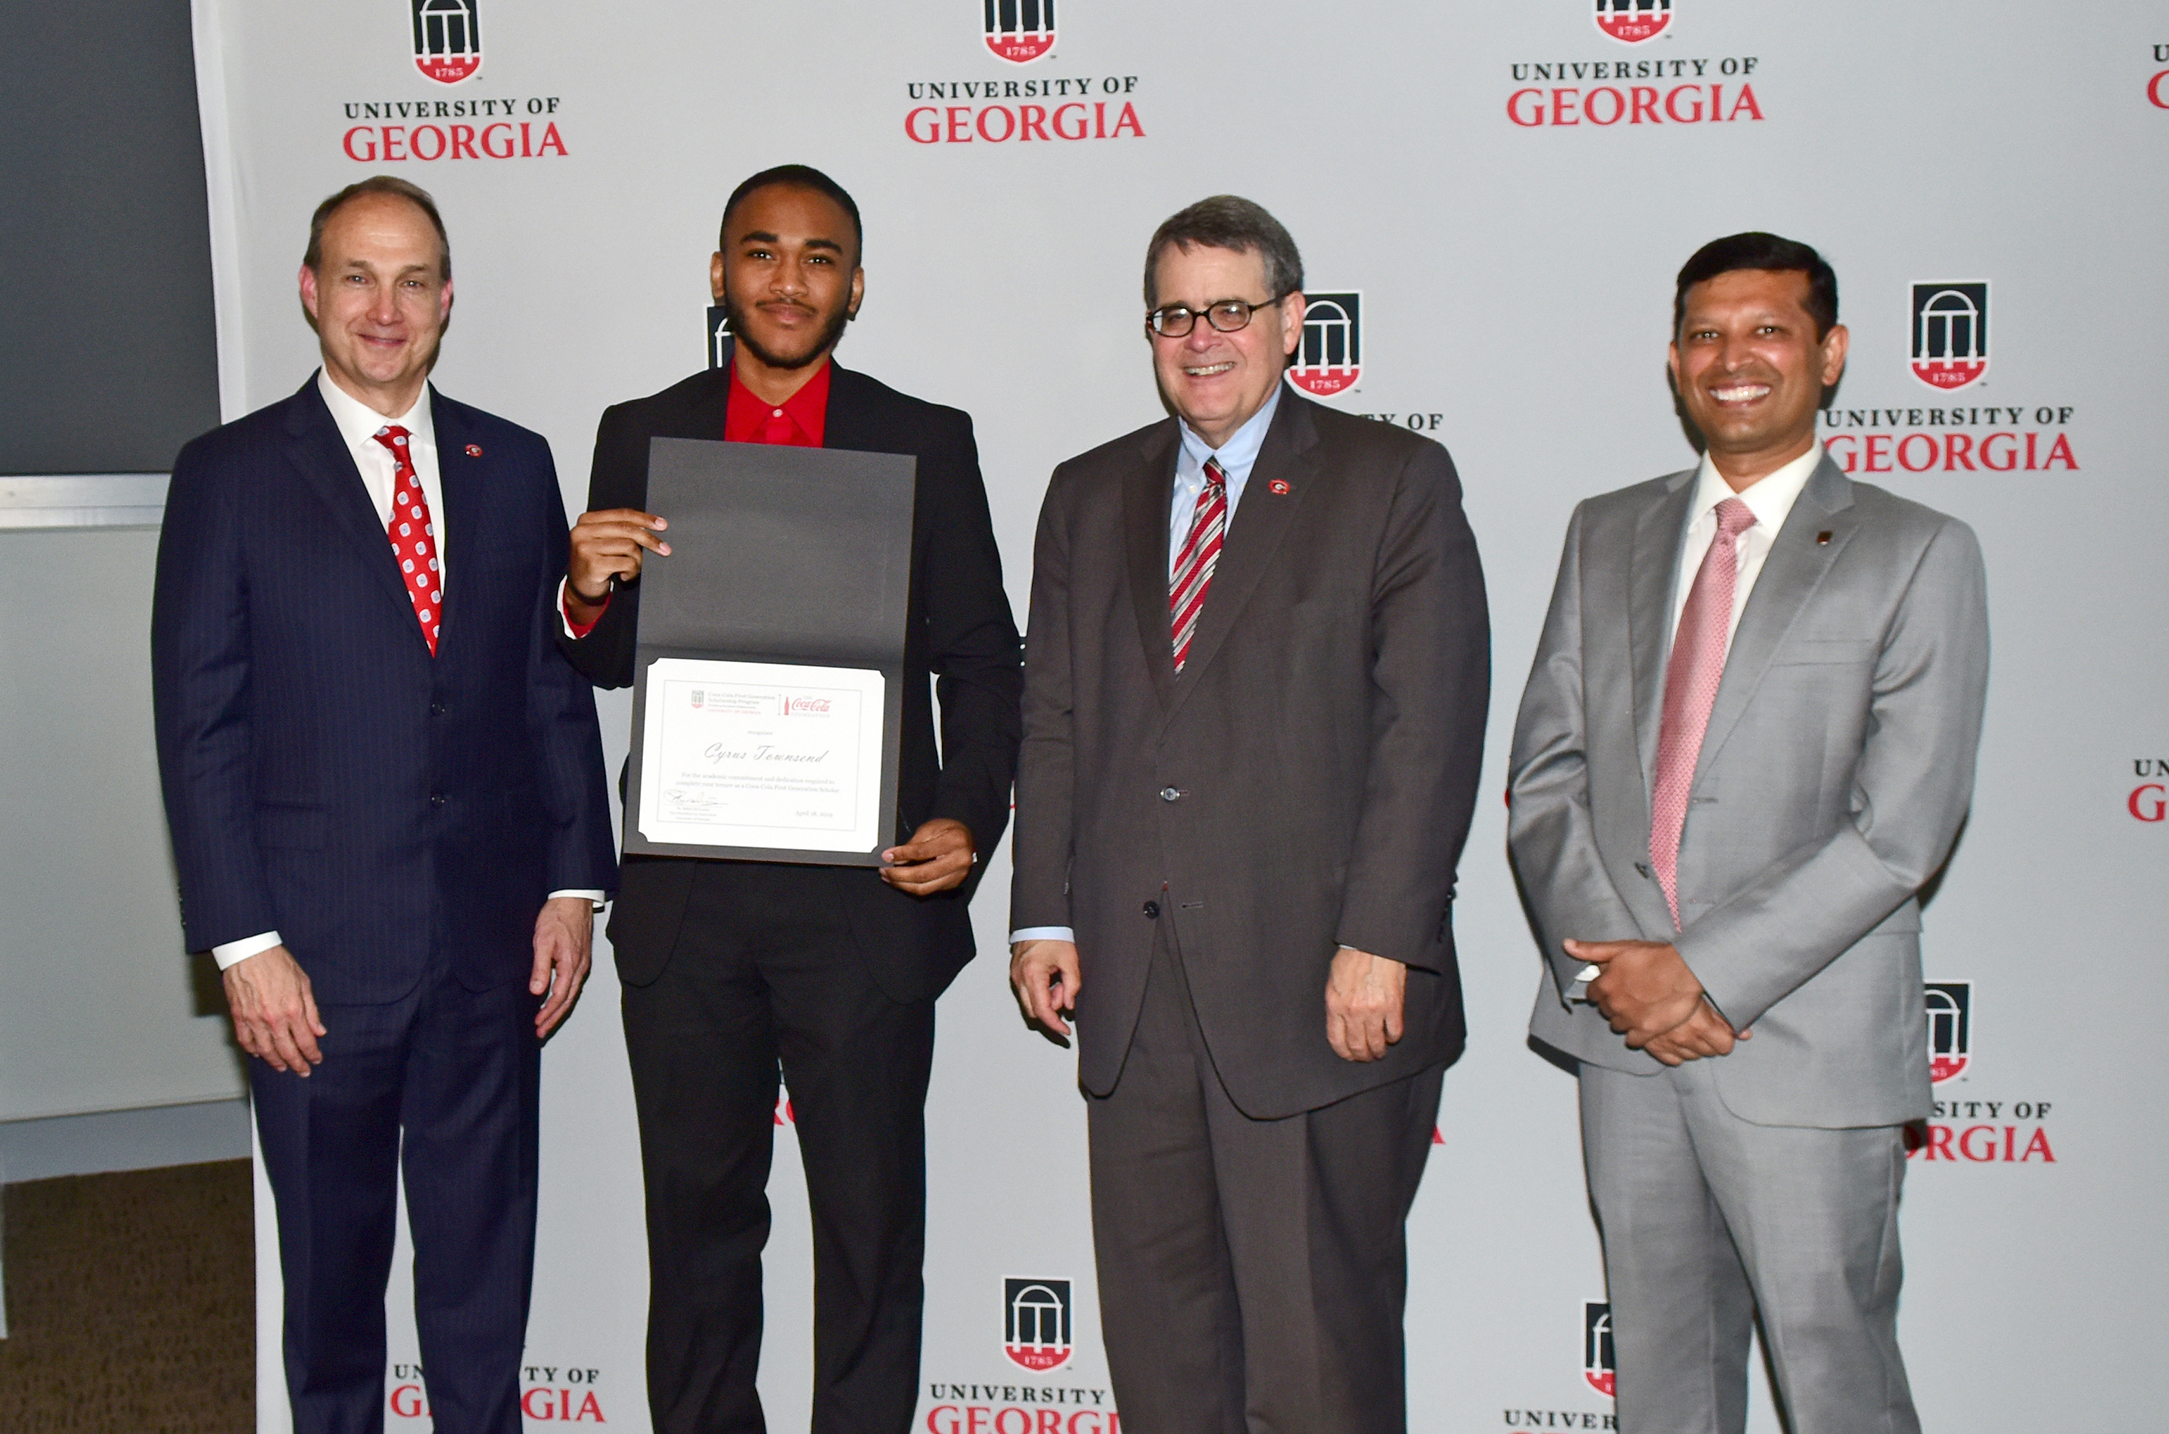 Photo:  Jim Dinkins, Coca-Cola North America president, presents a certificate to Cyrus Townsend, a Coca-Cola First Generation graduate, alongside UGA President Jere W. Morehead and Rahul Shrivastav, UGA vice president for instruction | UGA.edu